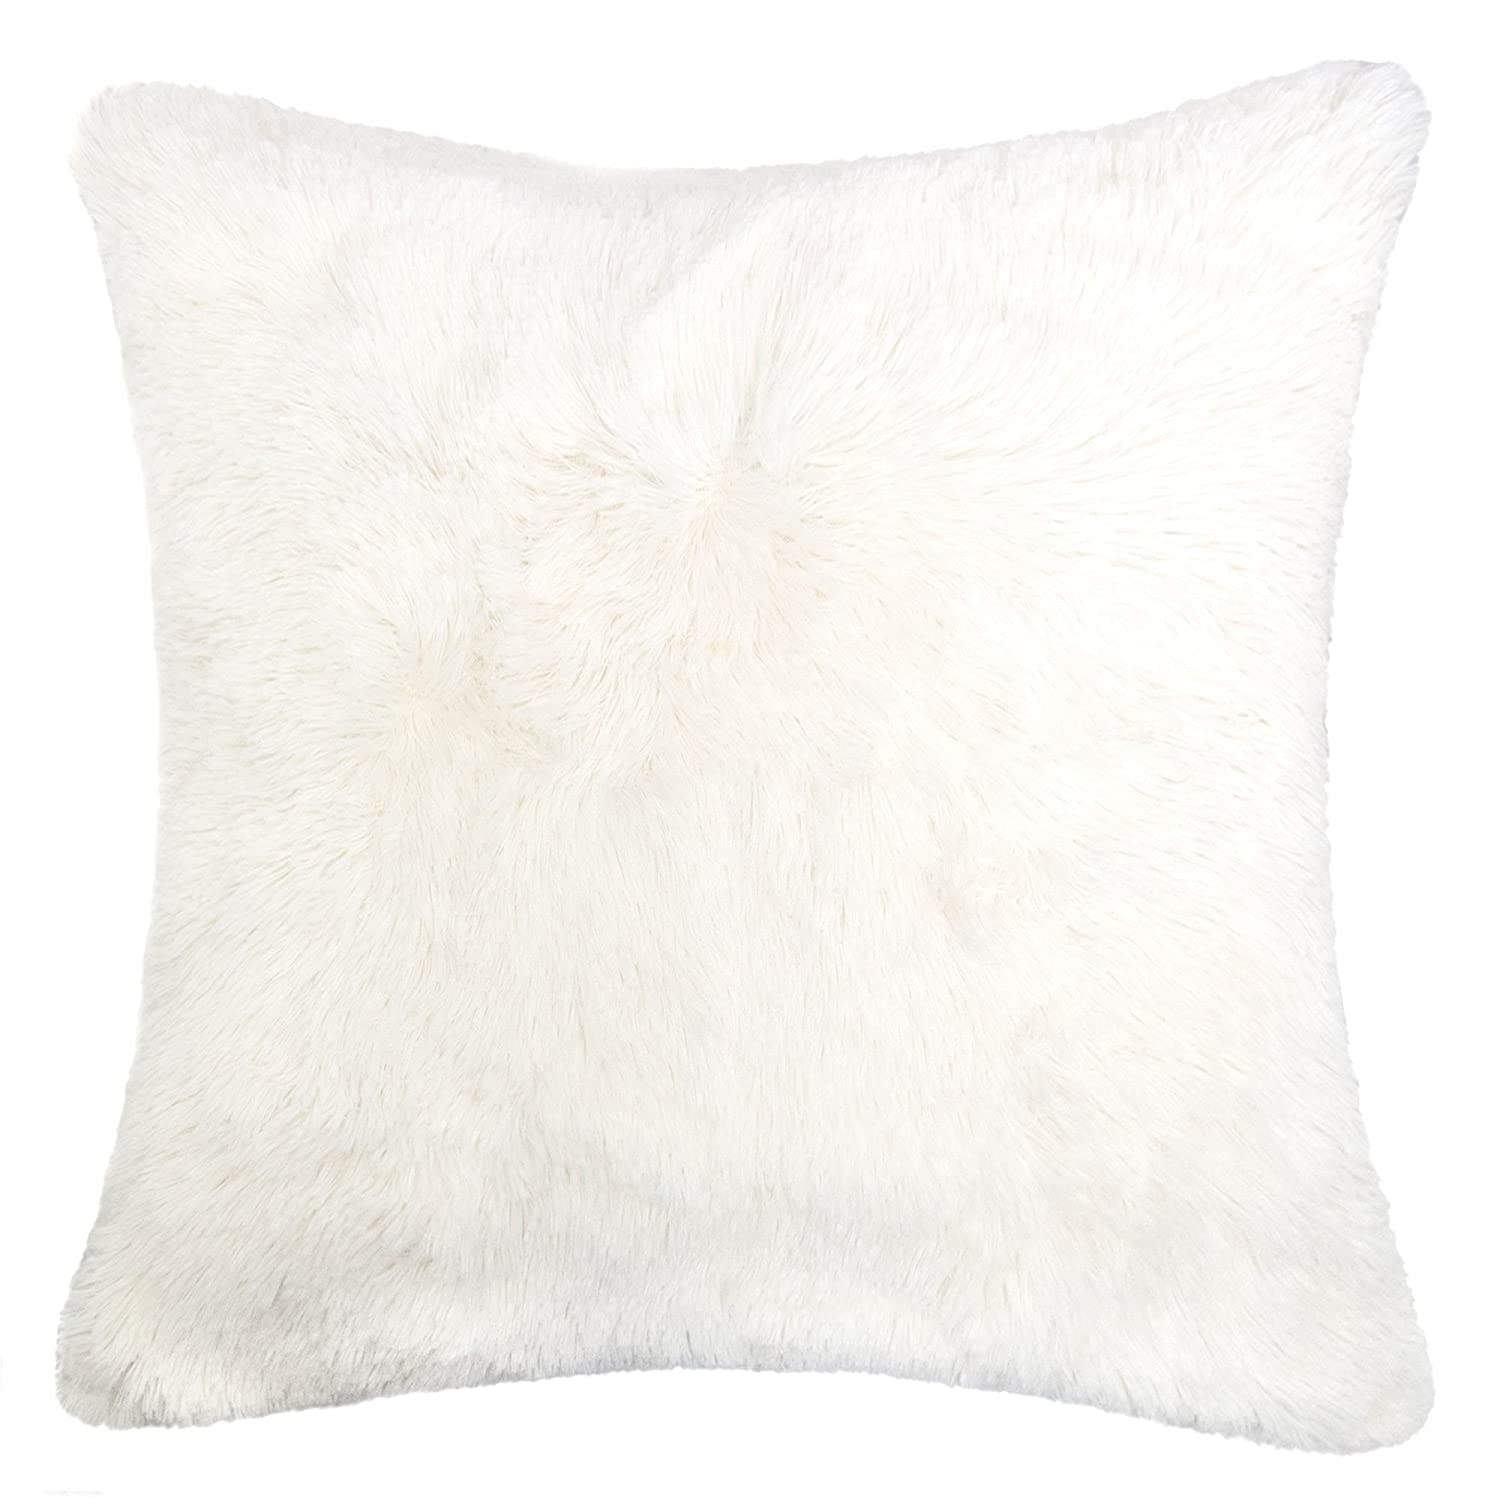 Homey Cozy Faux Fur Throw Pillow Cover,Ivory Double Side Luxury Fluffy  Super Soft Plush Fur Decorative Couch Cushion Pillow Case 20 X 20 Inch,  Cover Only